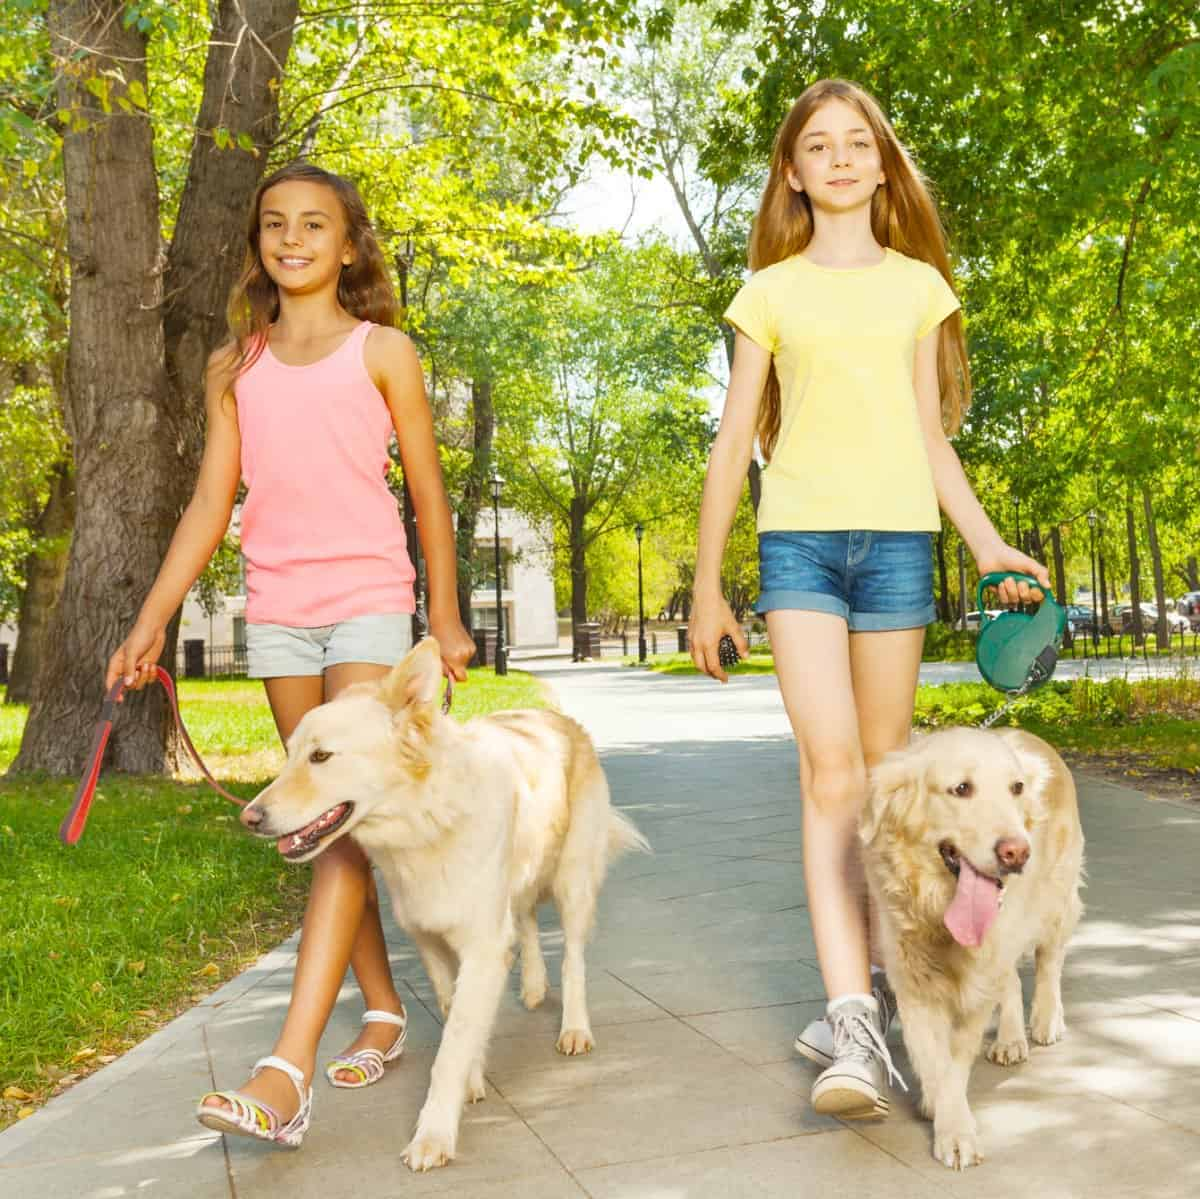 2 girls walking dogs in the park